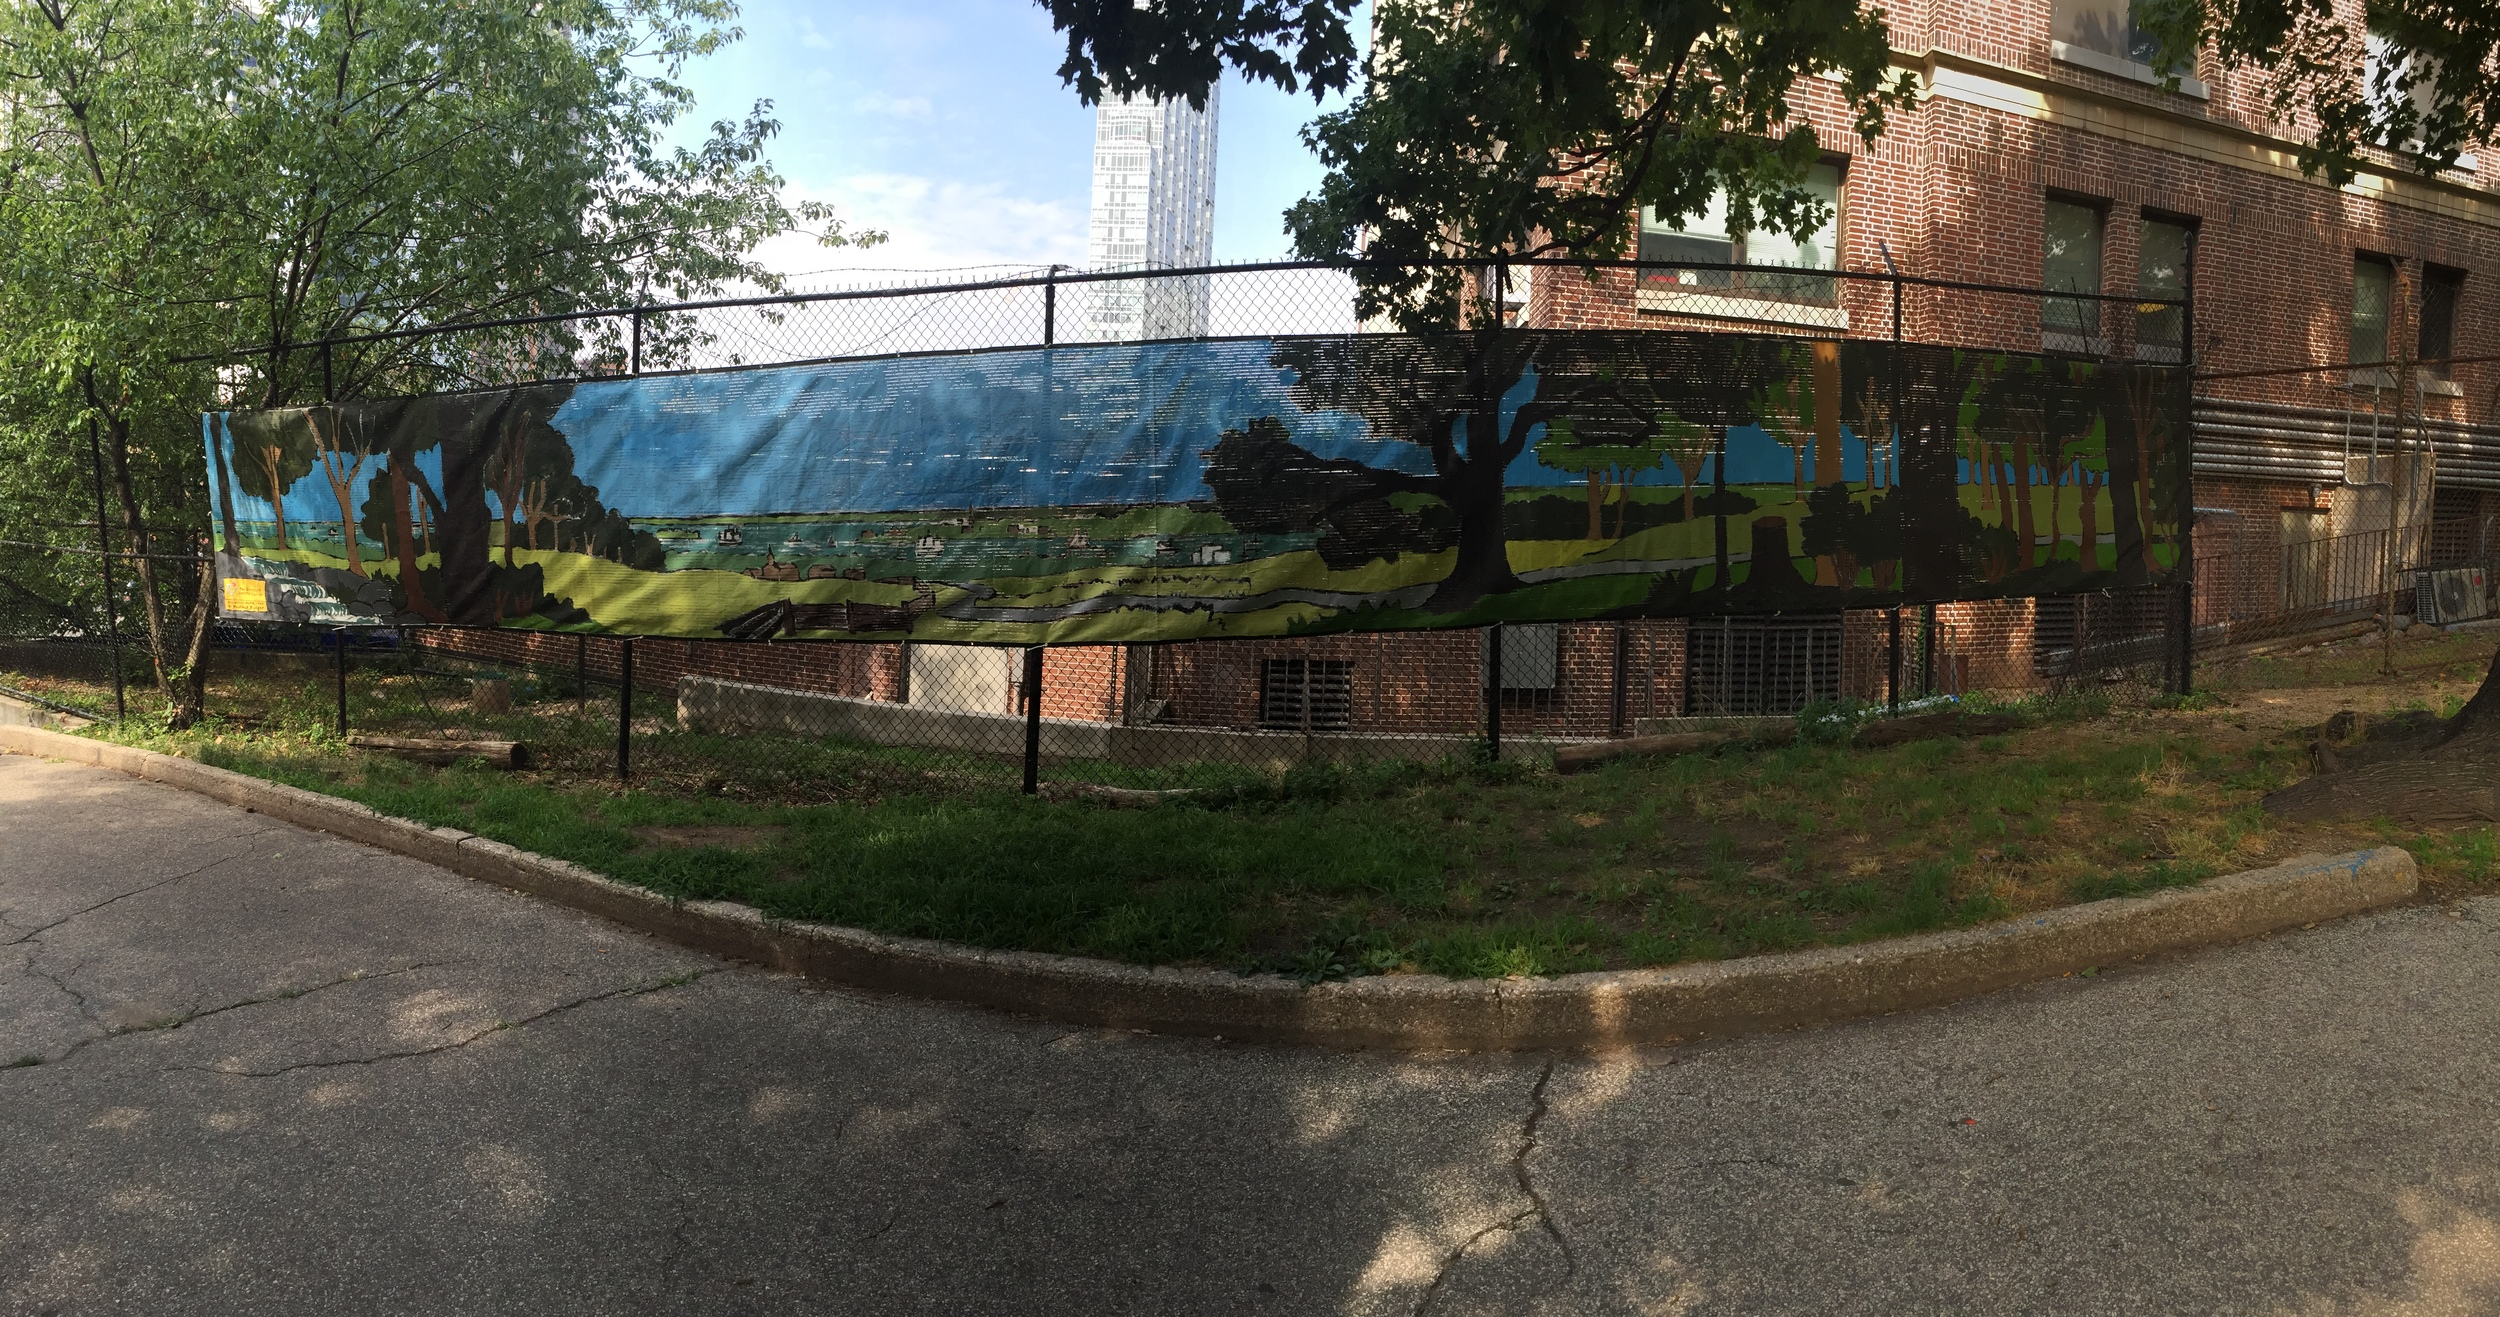 The finished mural hangs proudly between the hospital and Fort Greene Park